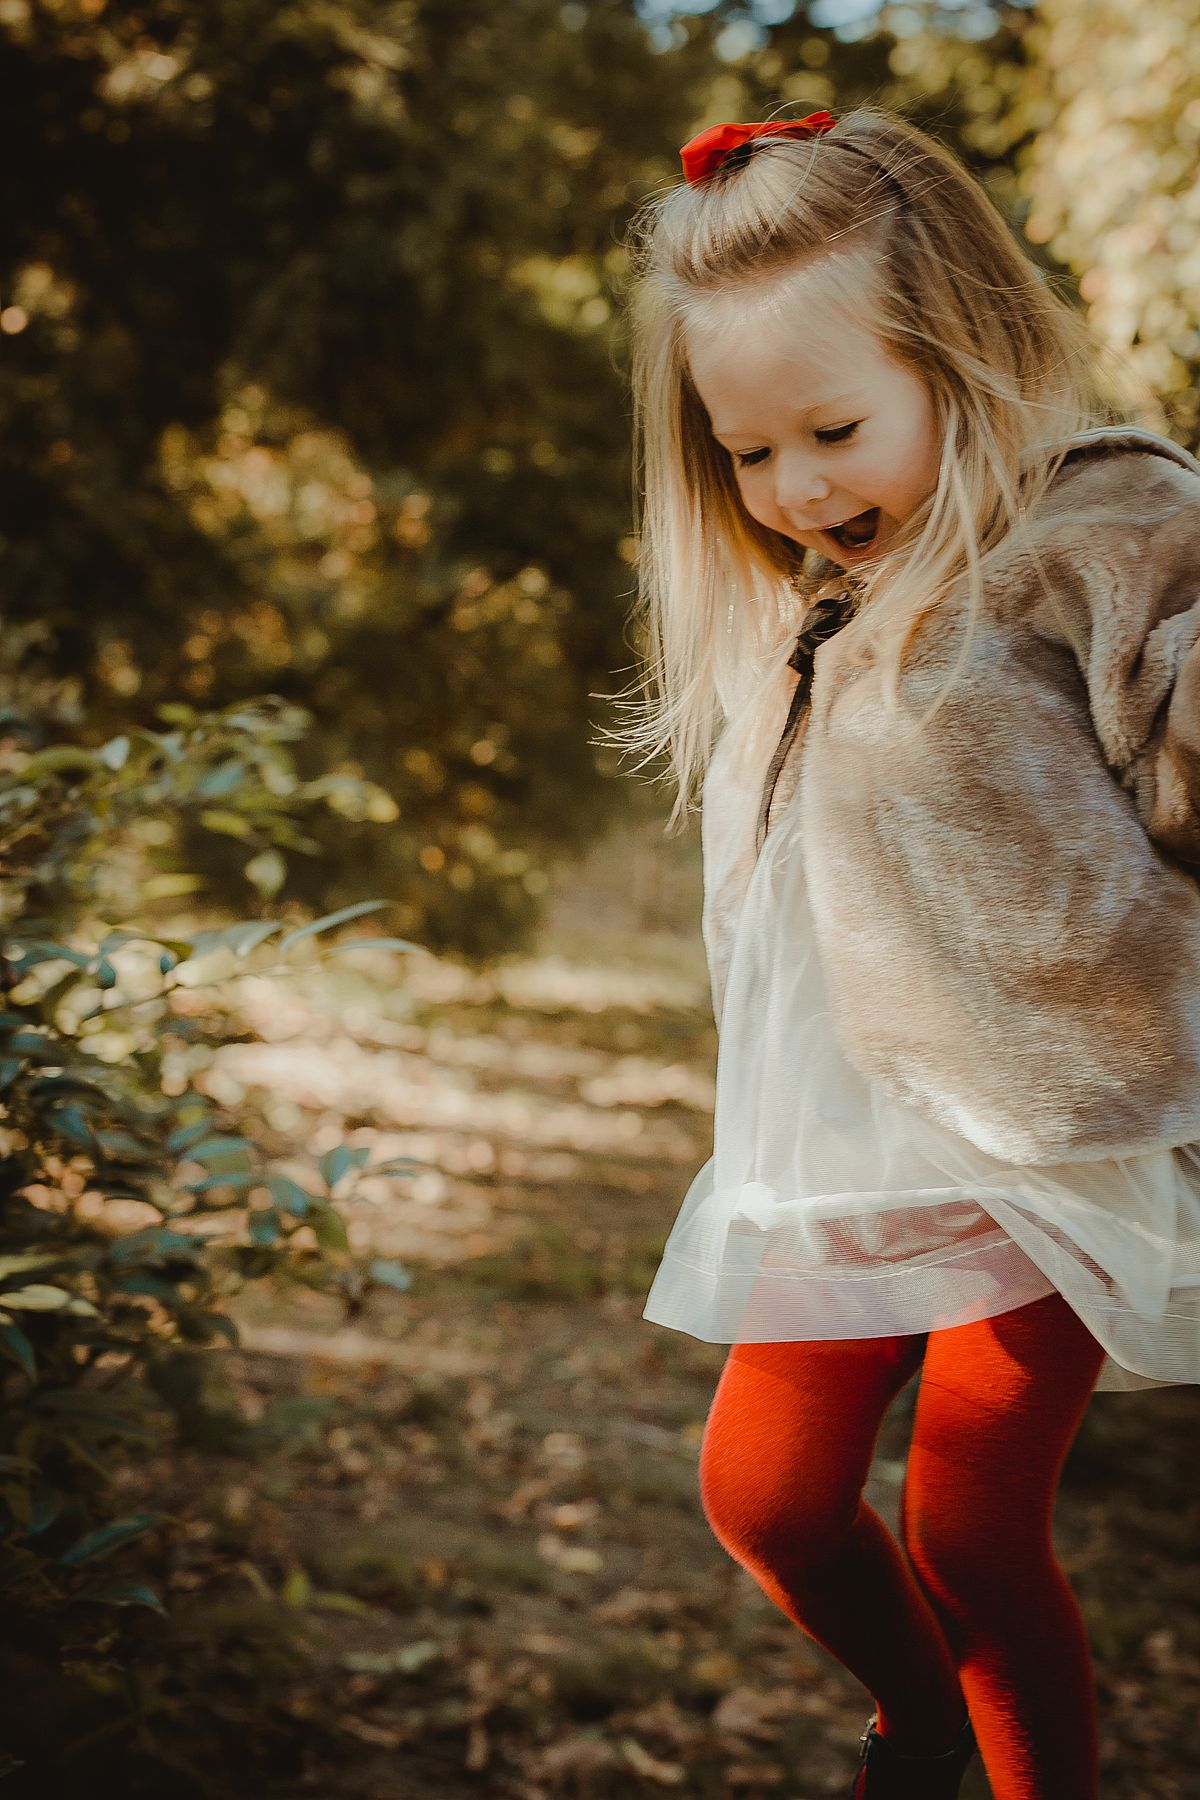 candid photo of beautiful blonde toddler with red tights and ribbon in her hair playing in central park. nyc family photographer krystil mcdowall